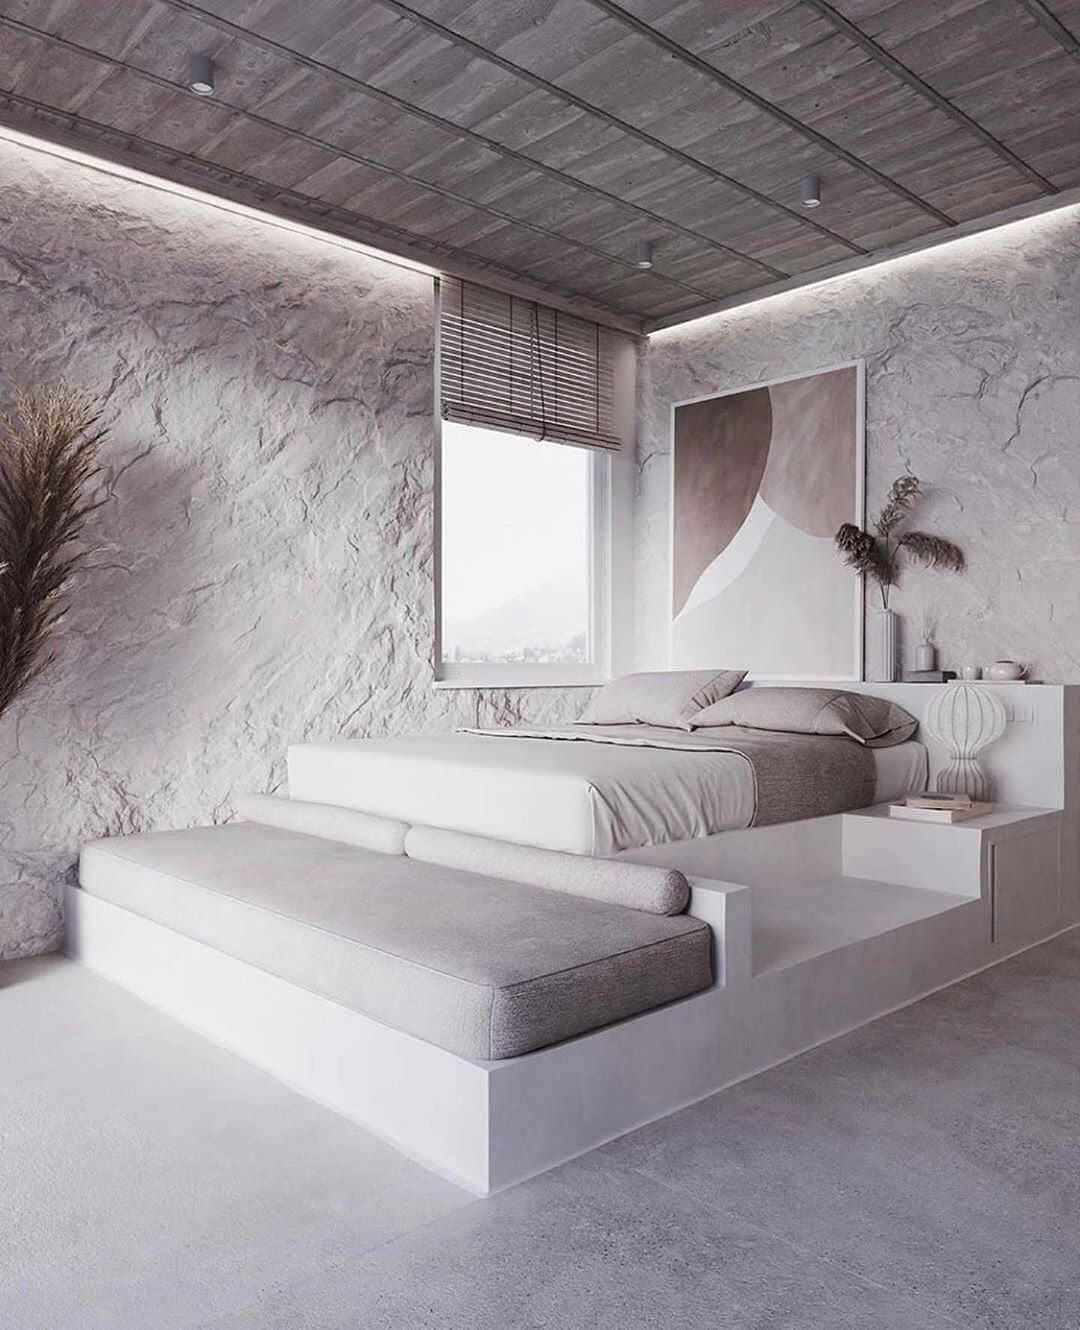 Luxuryinterior Design: Designed By Nazar Tsymbaliuk Follow Us For More